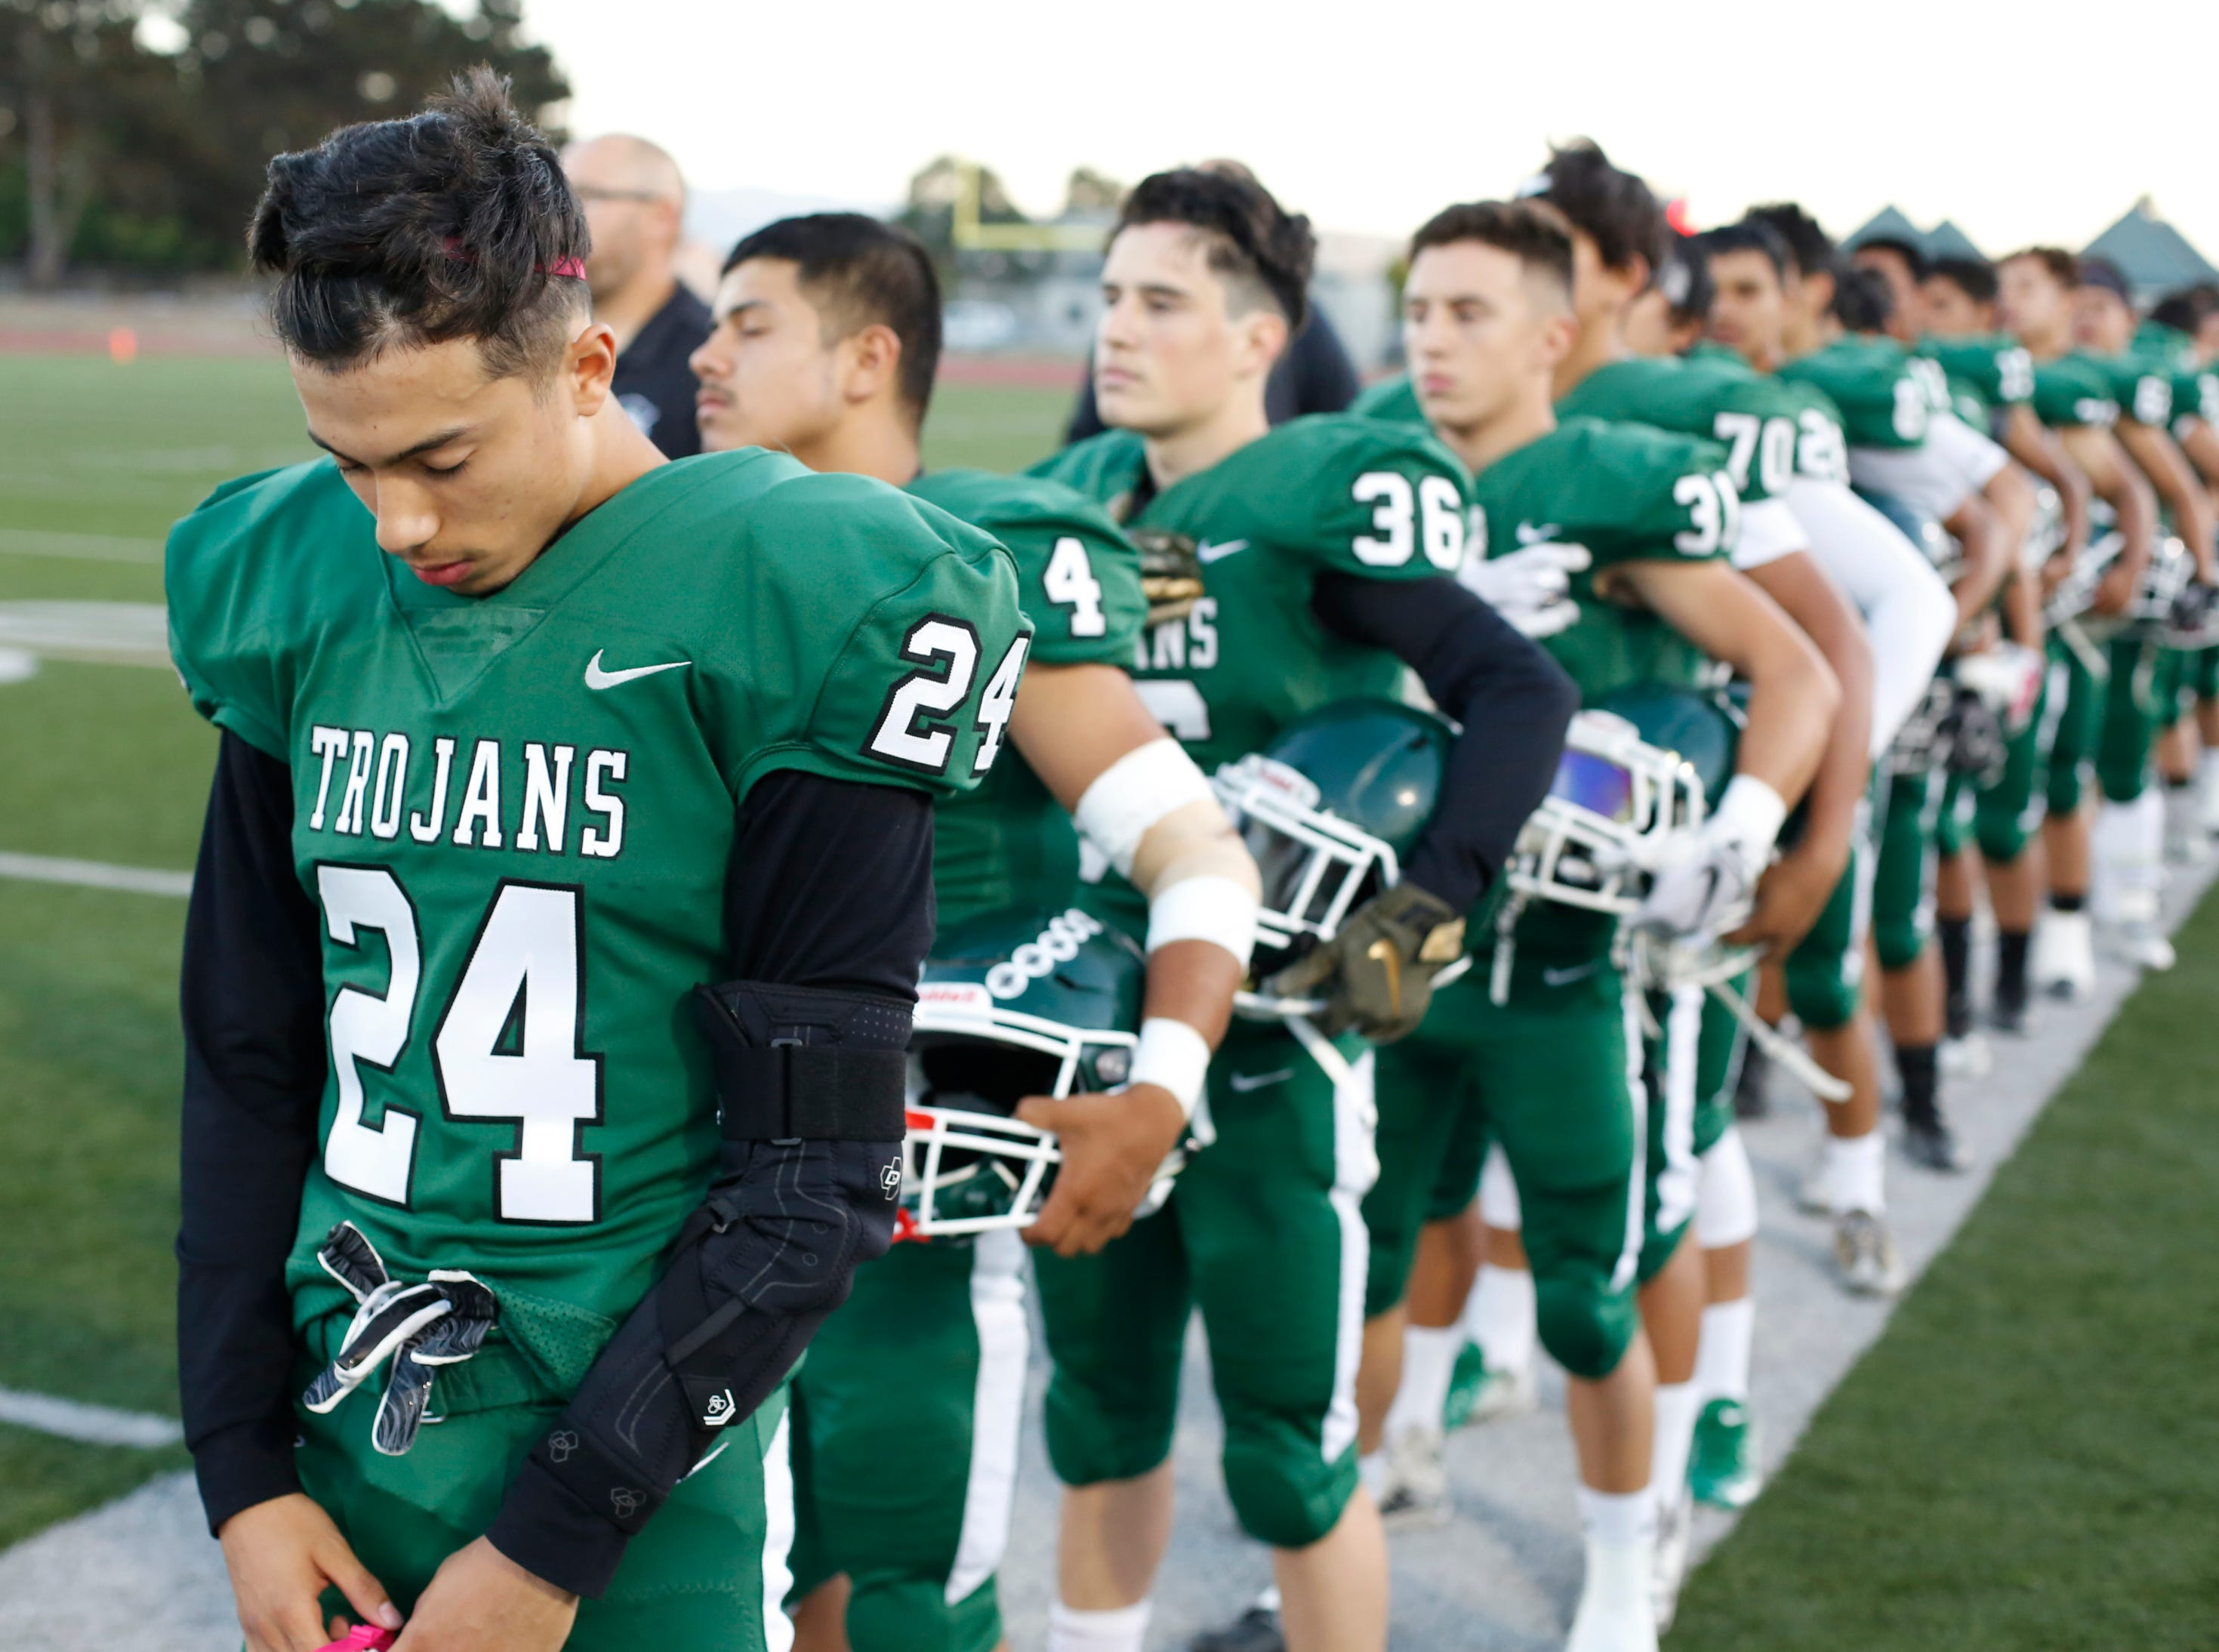 Alisal's Eduardo Rodriquez bows his head before taking the field against Everett Alvarez during football at Alisal High School in Salinas on Friday August 31, 2018. (Photo By David Royal)